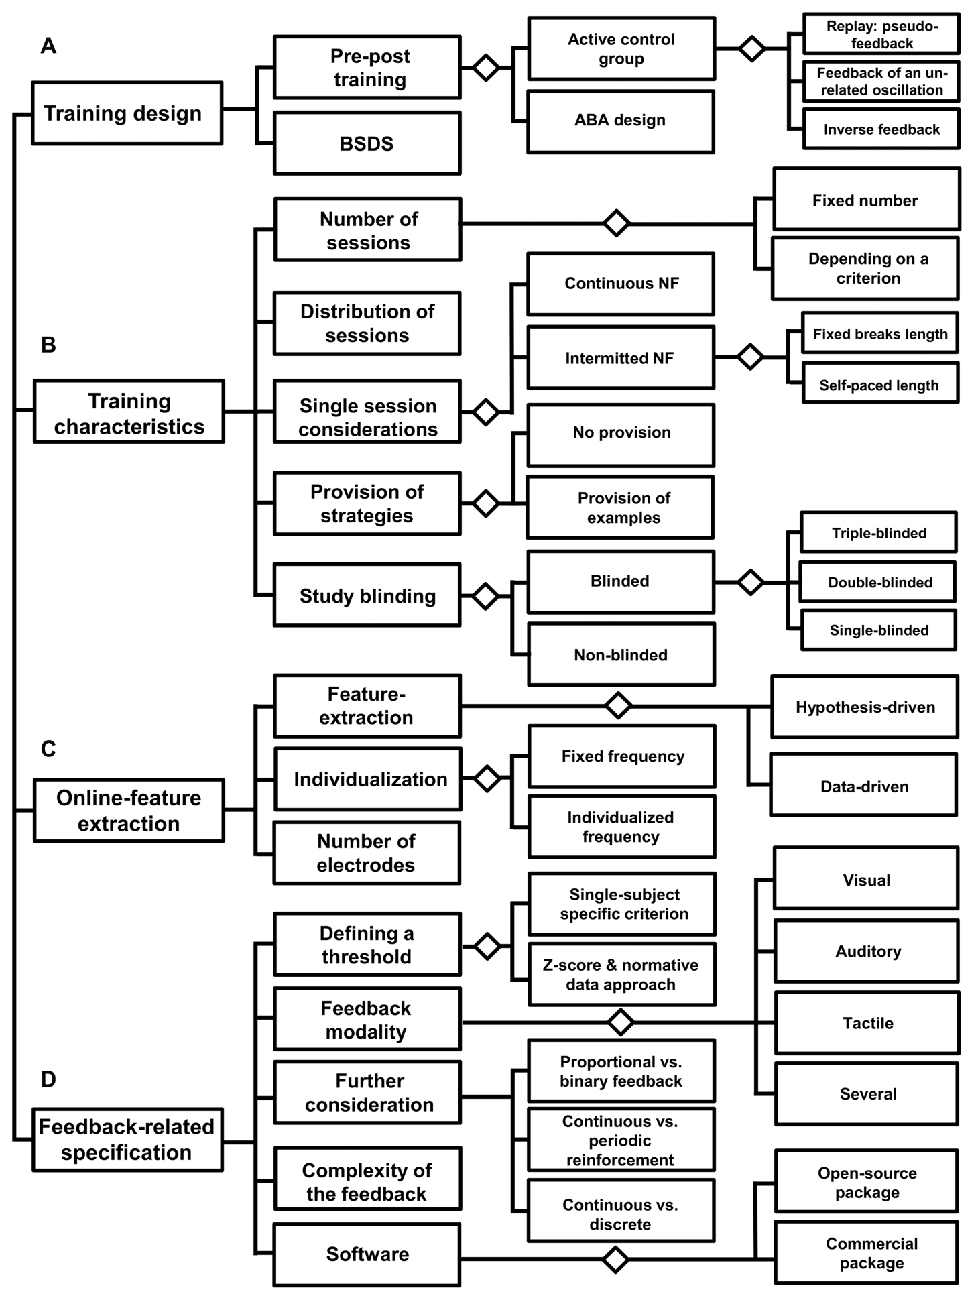 Frontiers | EEG-Neurofeedback as a Tool to Modulate Cognition and ...